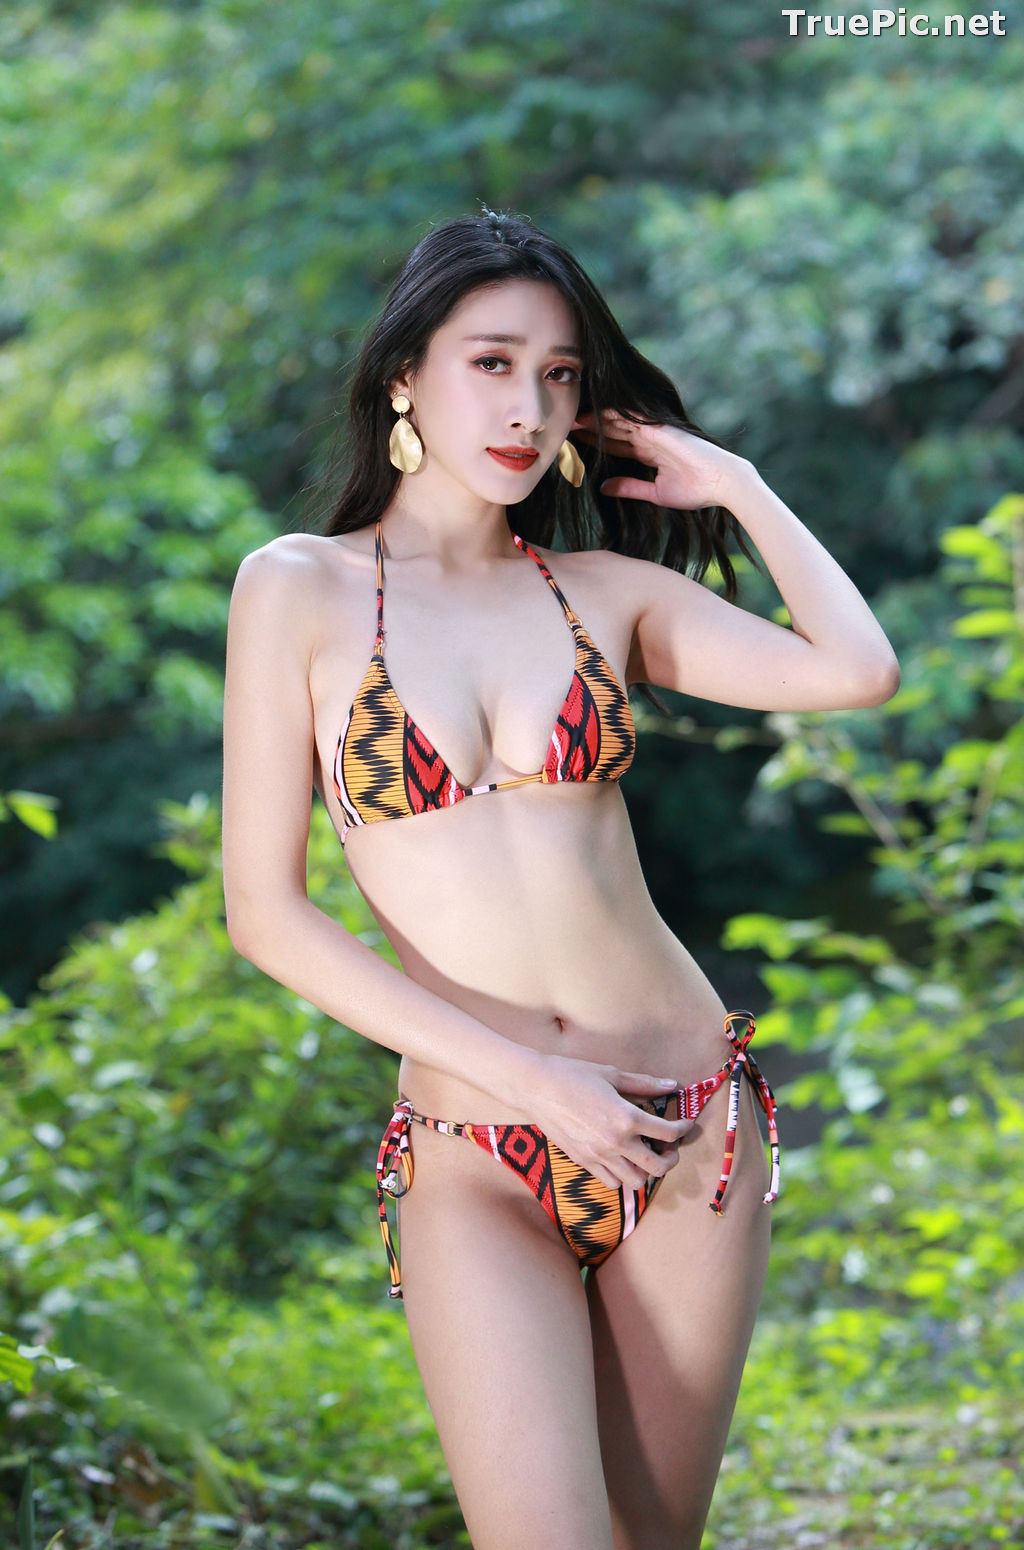 Image Taiwanese Model - 段璟樂 - Lovely and Sexy Bikini Baby - TruePic.net - Picture-8